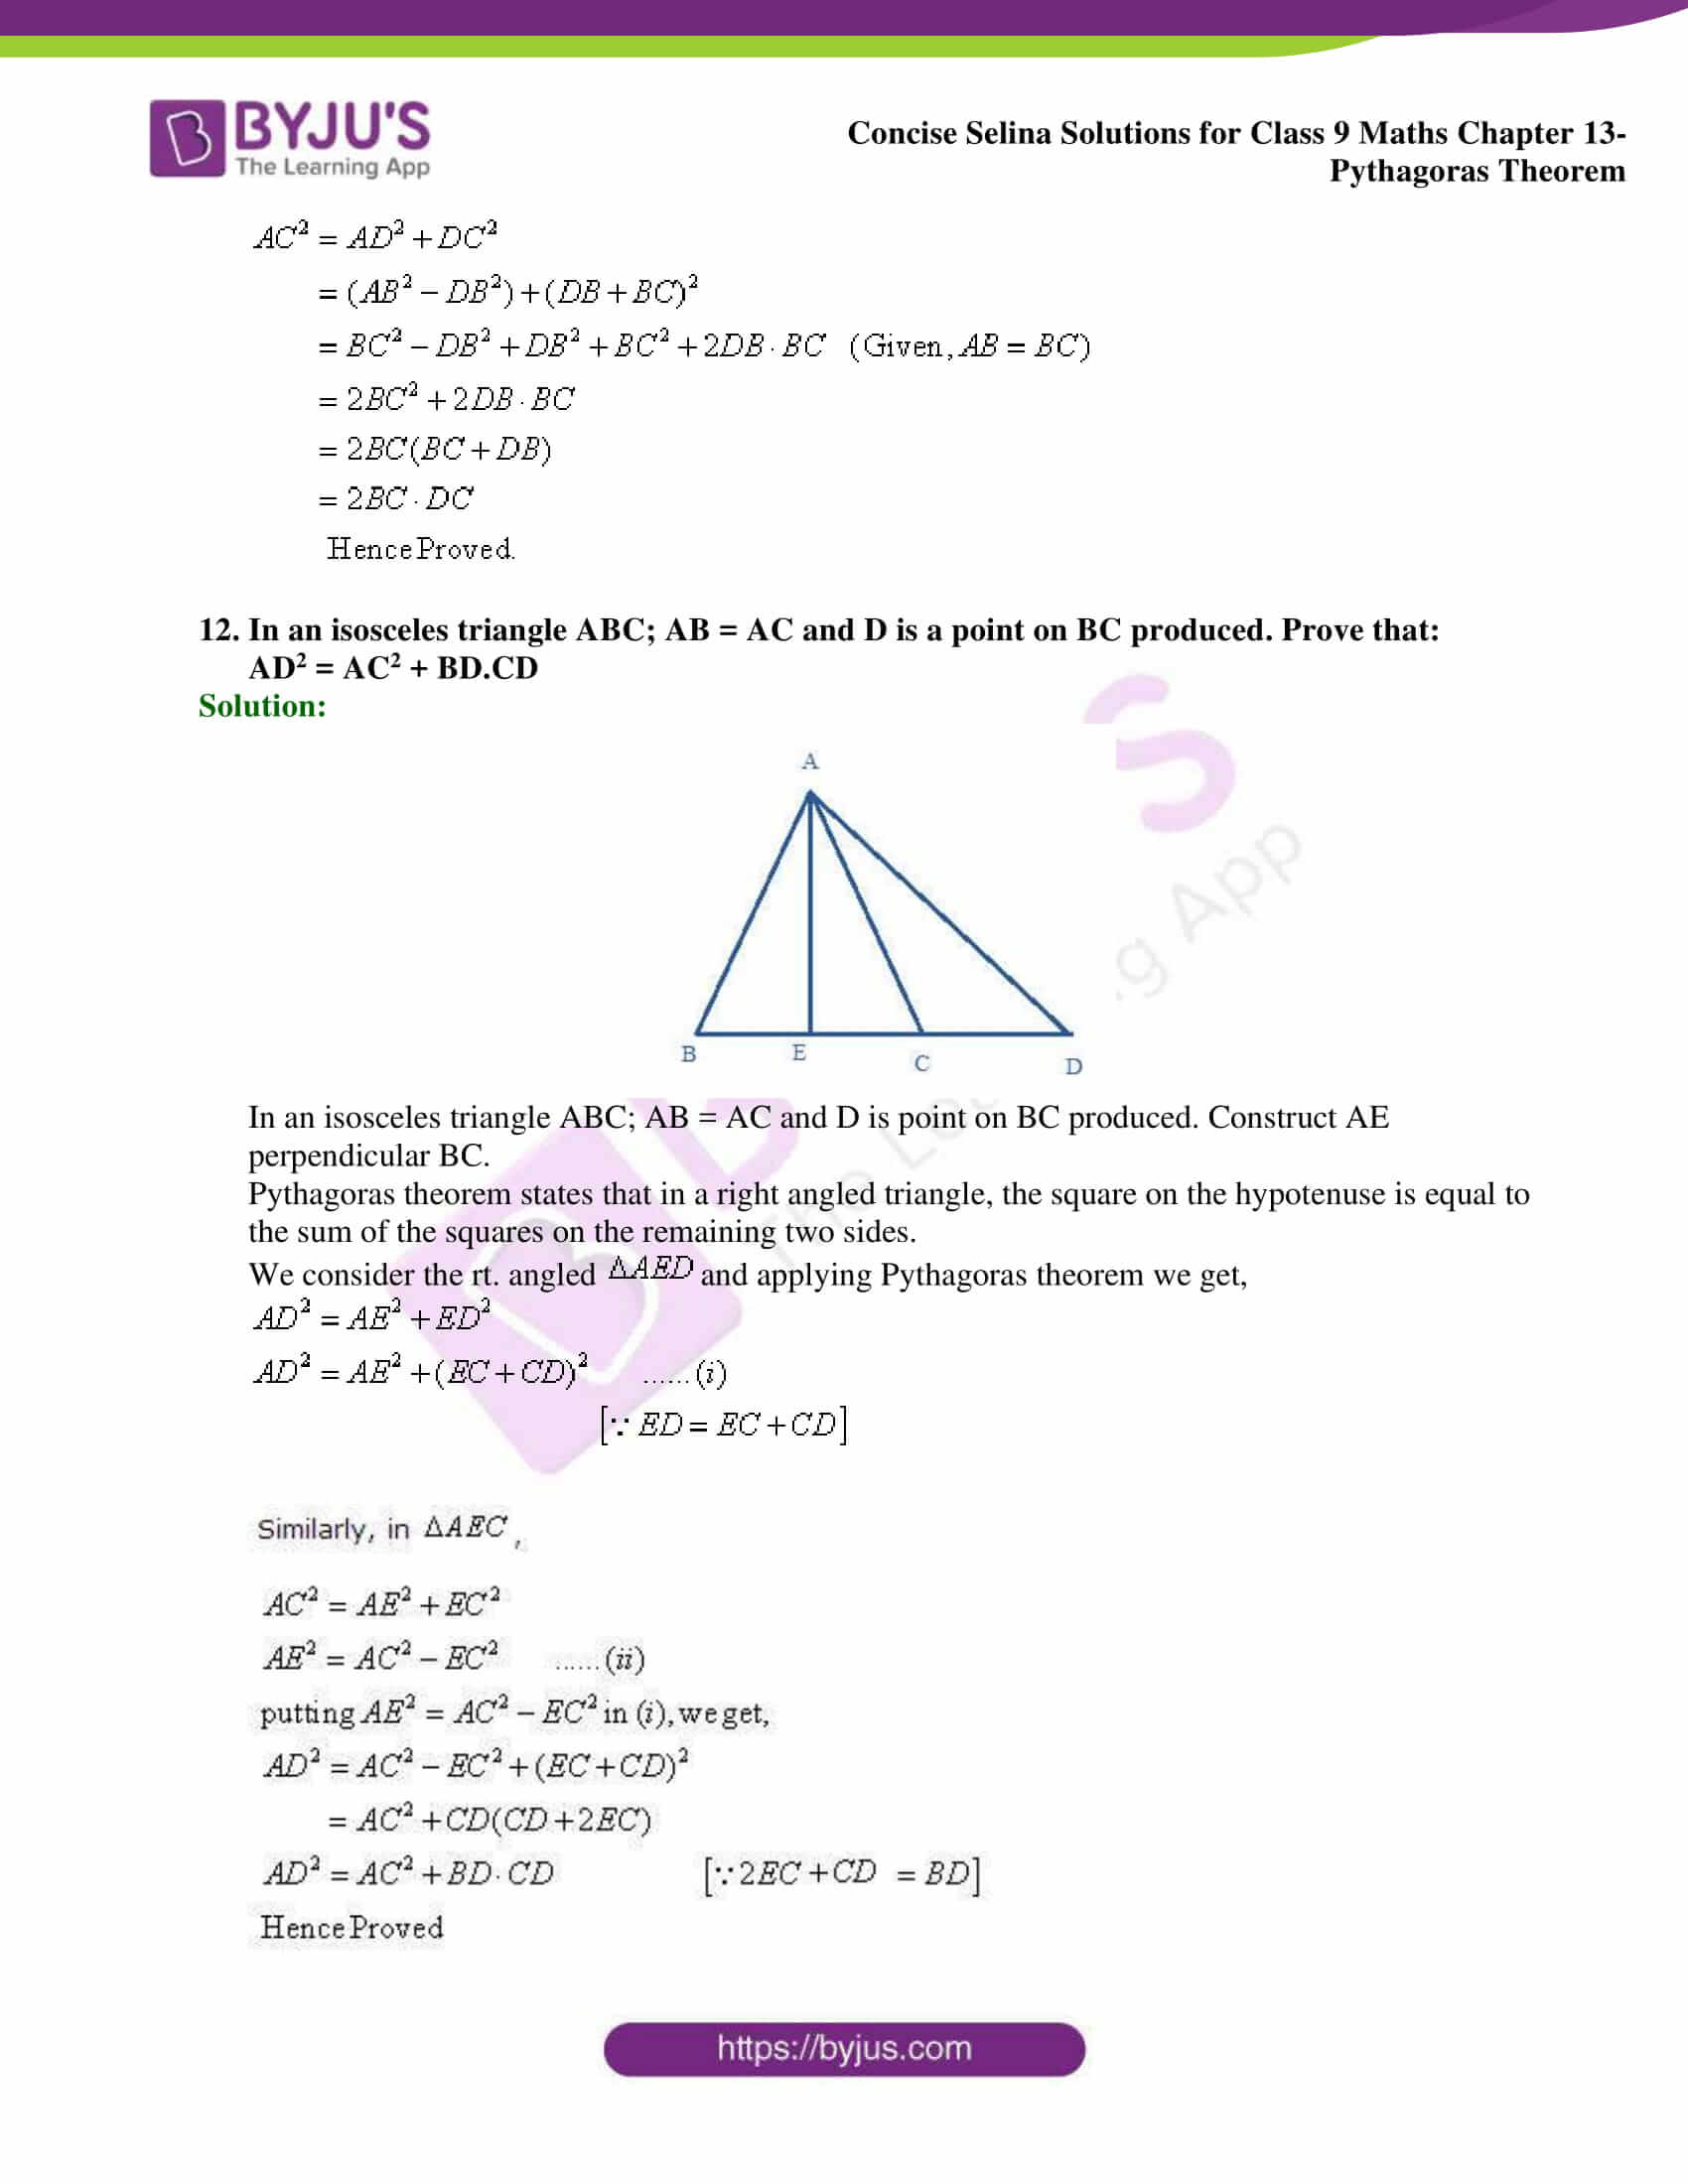 selina Solutions for Class 9 Maths Chapter 13 part 20